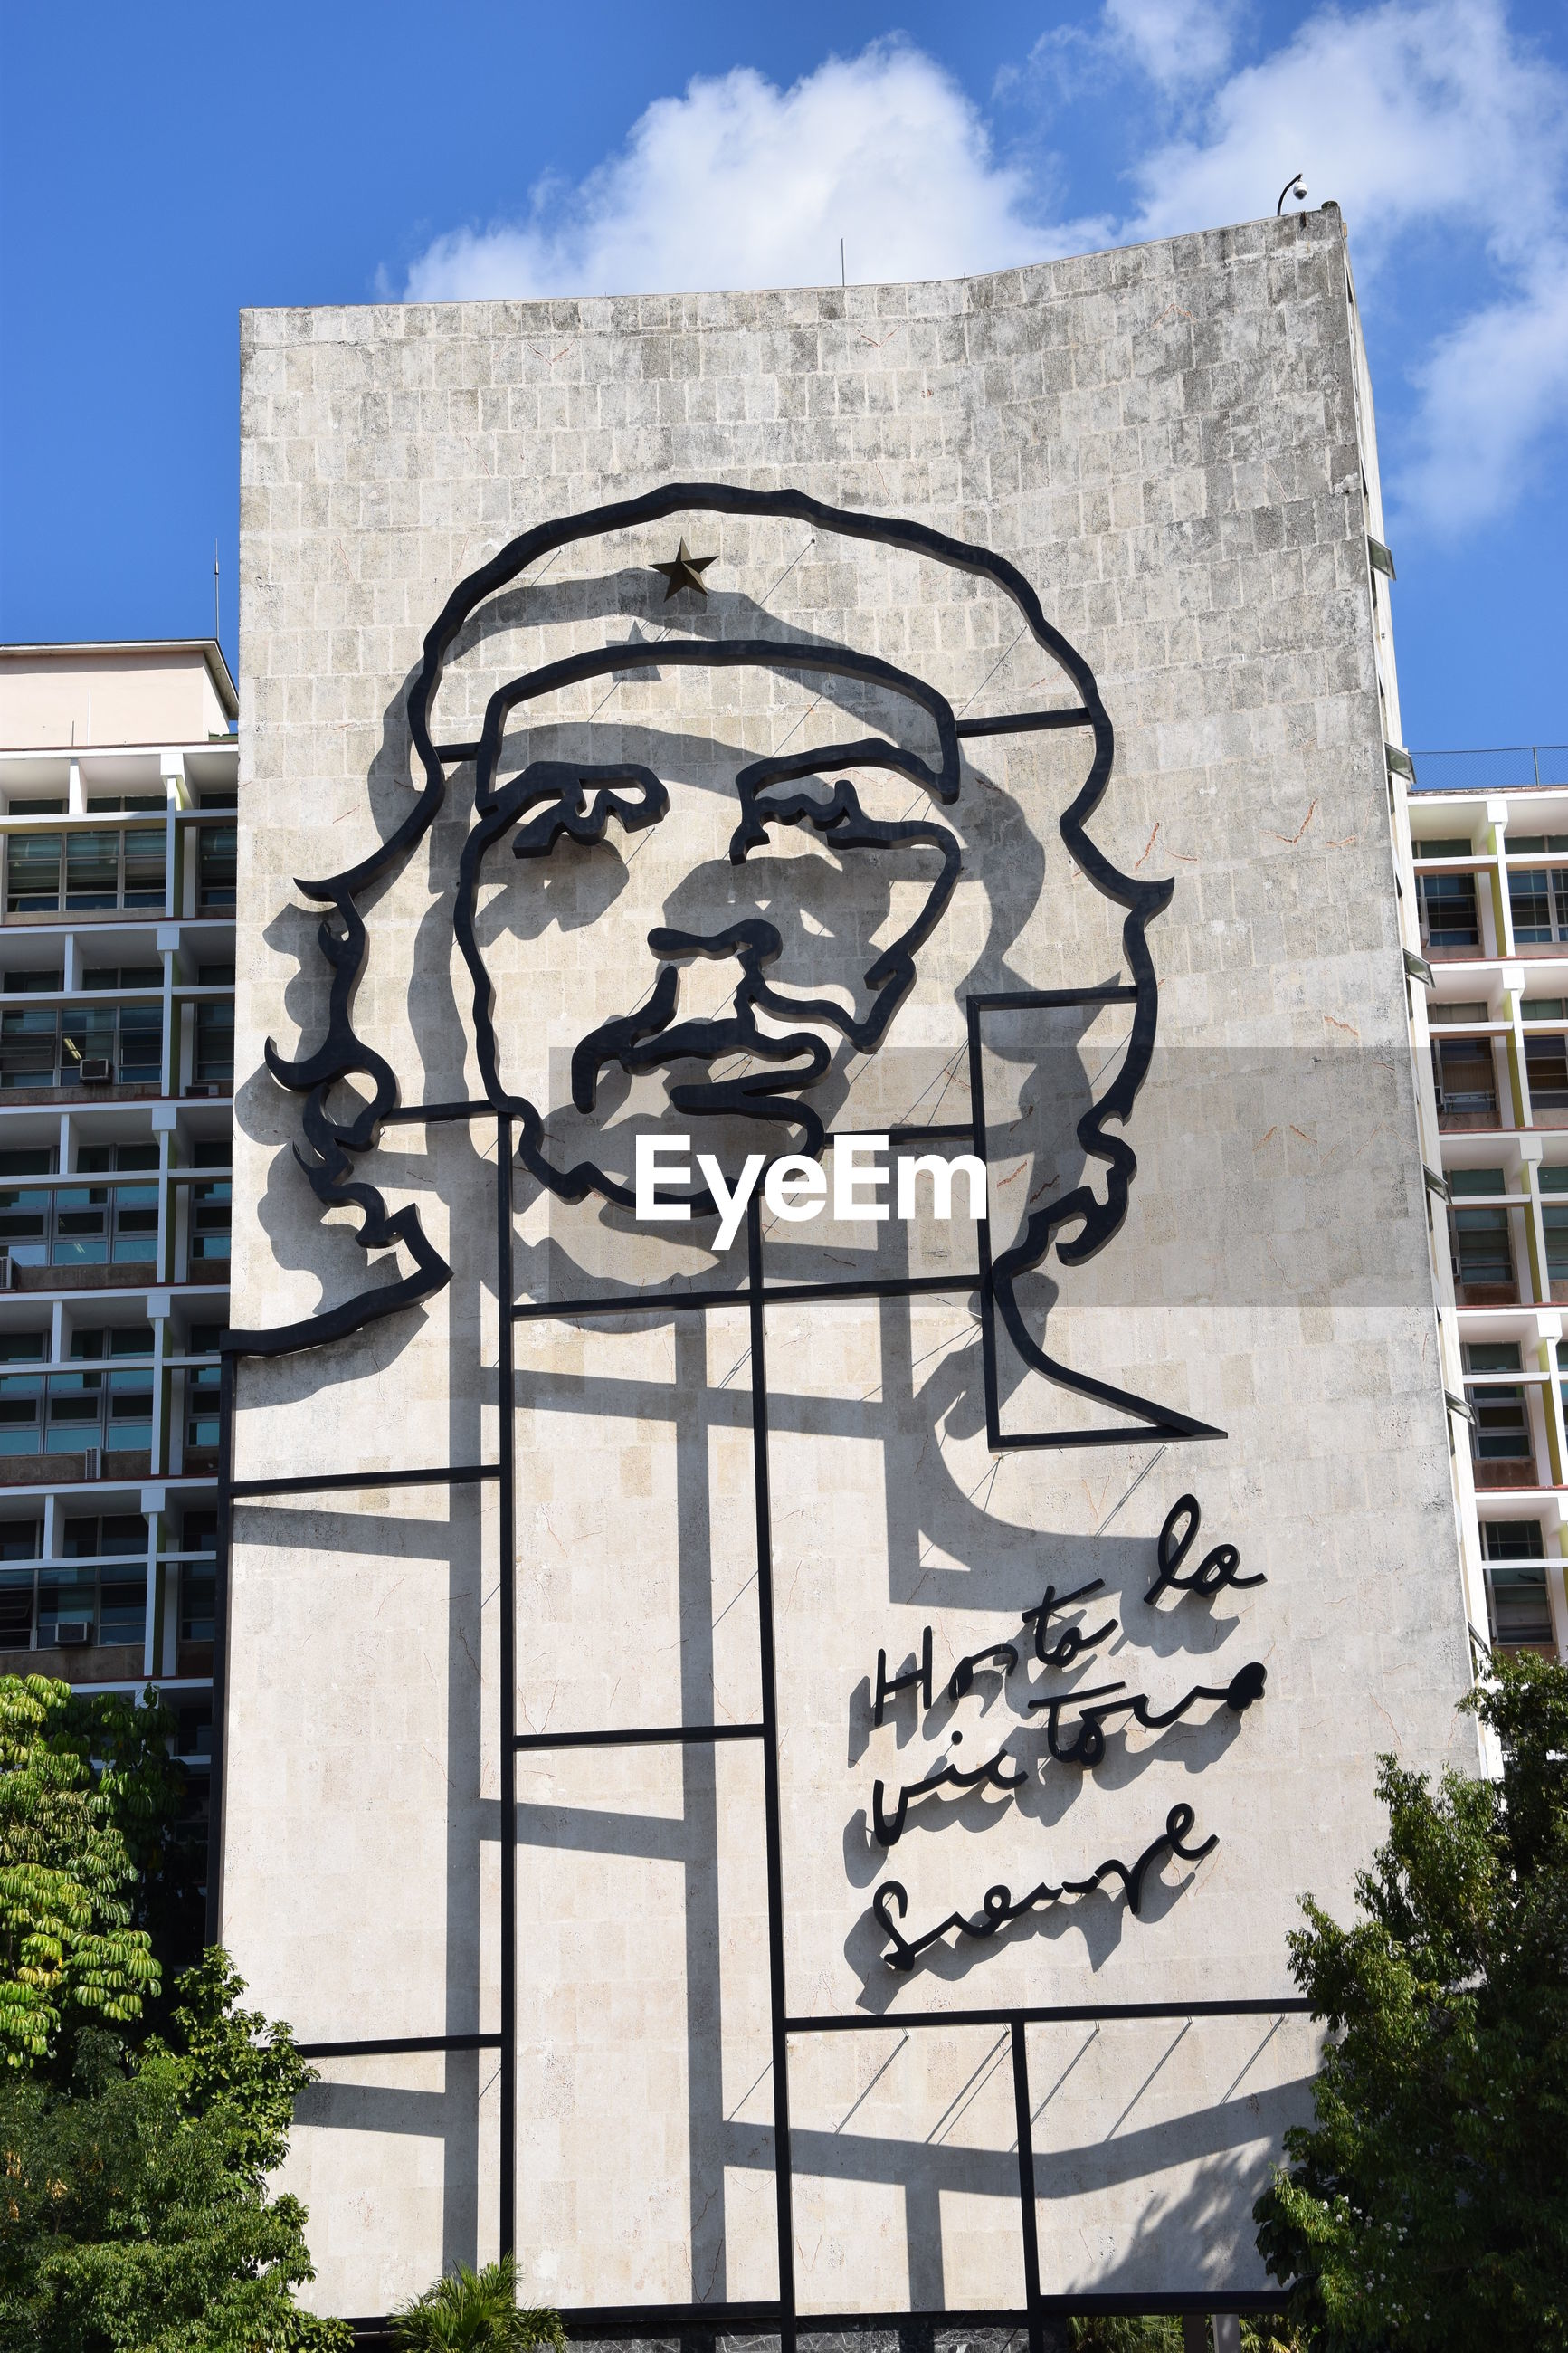 Ministry of the interior building with face of che guevara